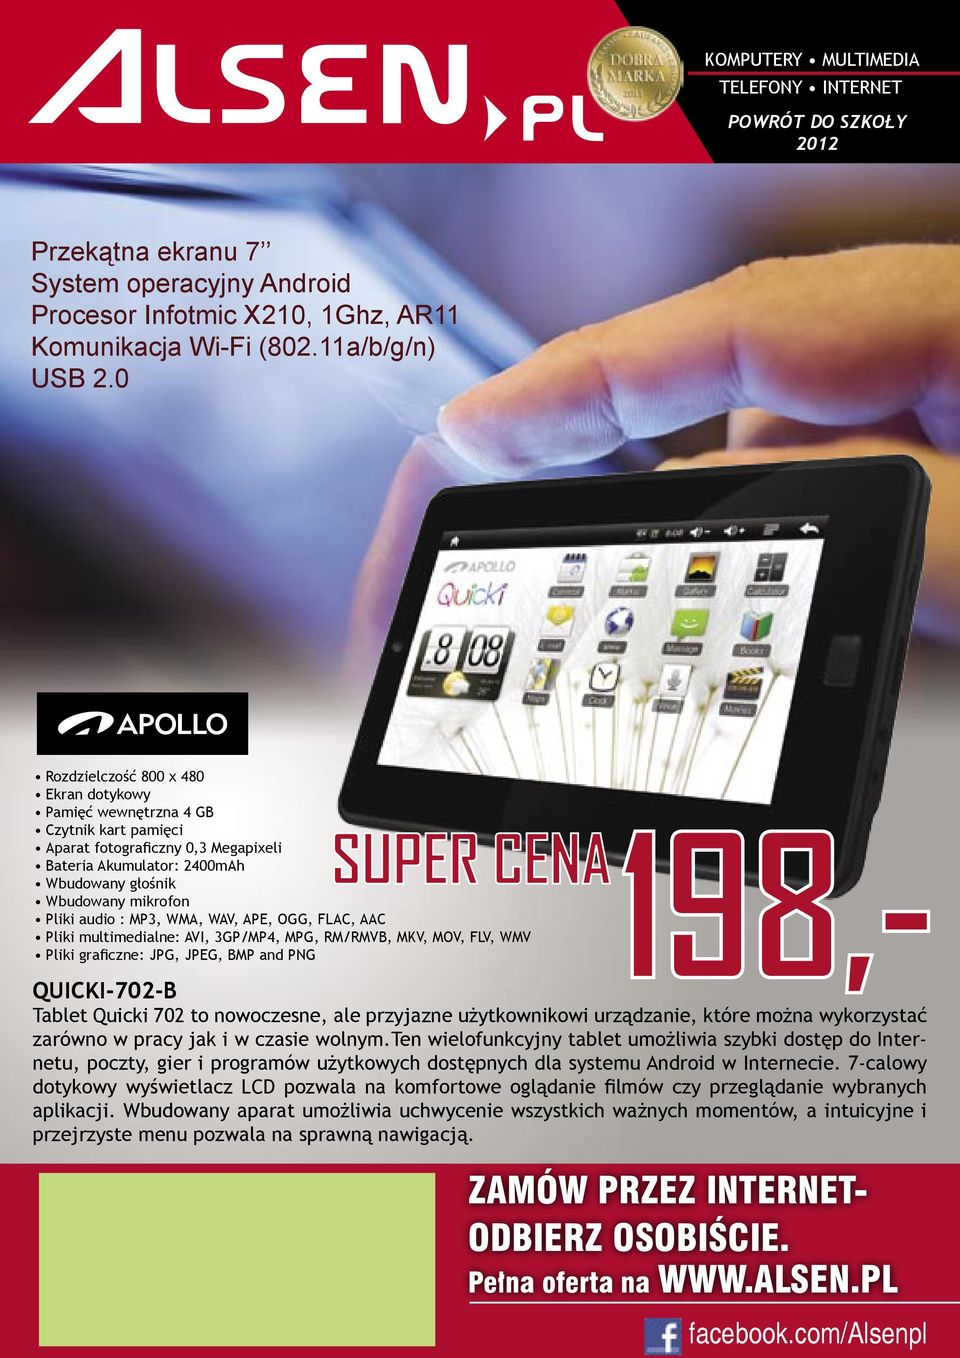 MP3, WMA, WAV, APE, OGG, FLAC, AAC Pliki multimedialne: AVI, 3GP/MP4, MPG, RM/RMVB, MKV, MOV, FLV, WMV Pliki graficzne: JPG, JPEG, BMP and PNG QUICKI-702-B Tablet Quicki 702 to nowoczesne, ale